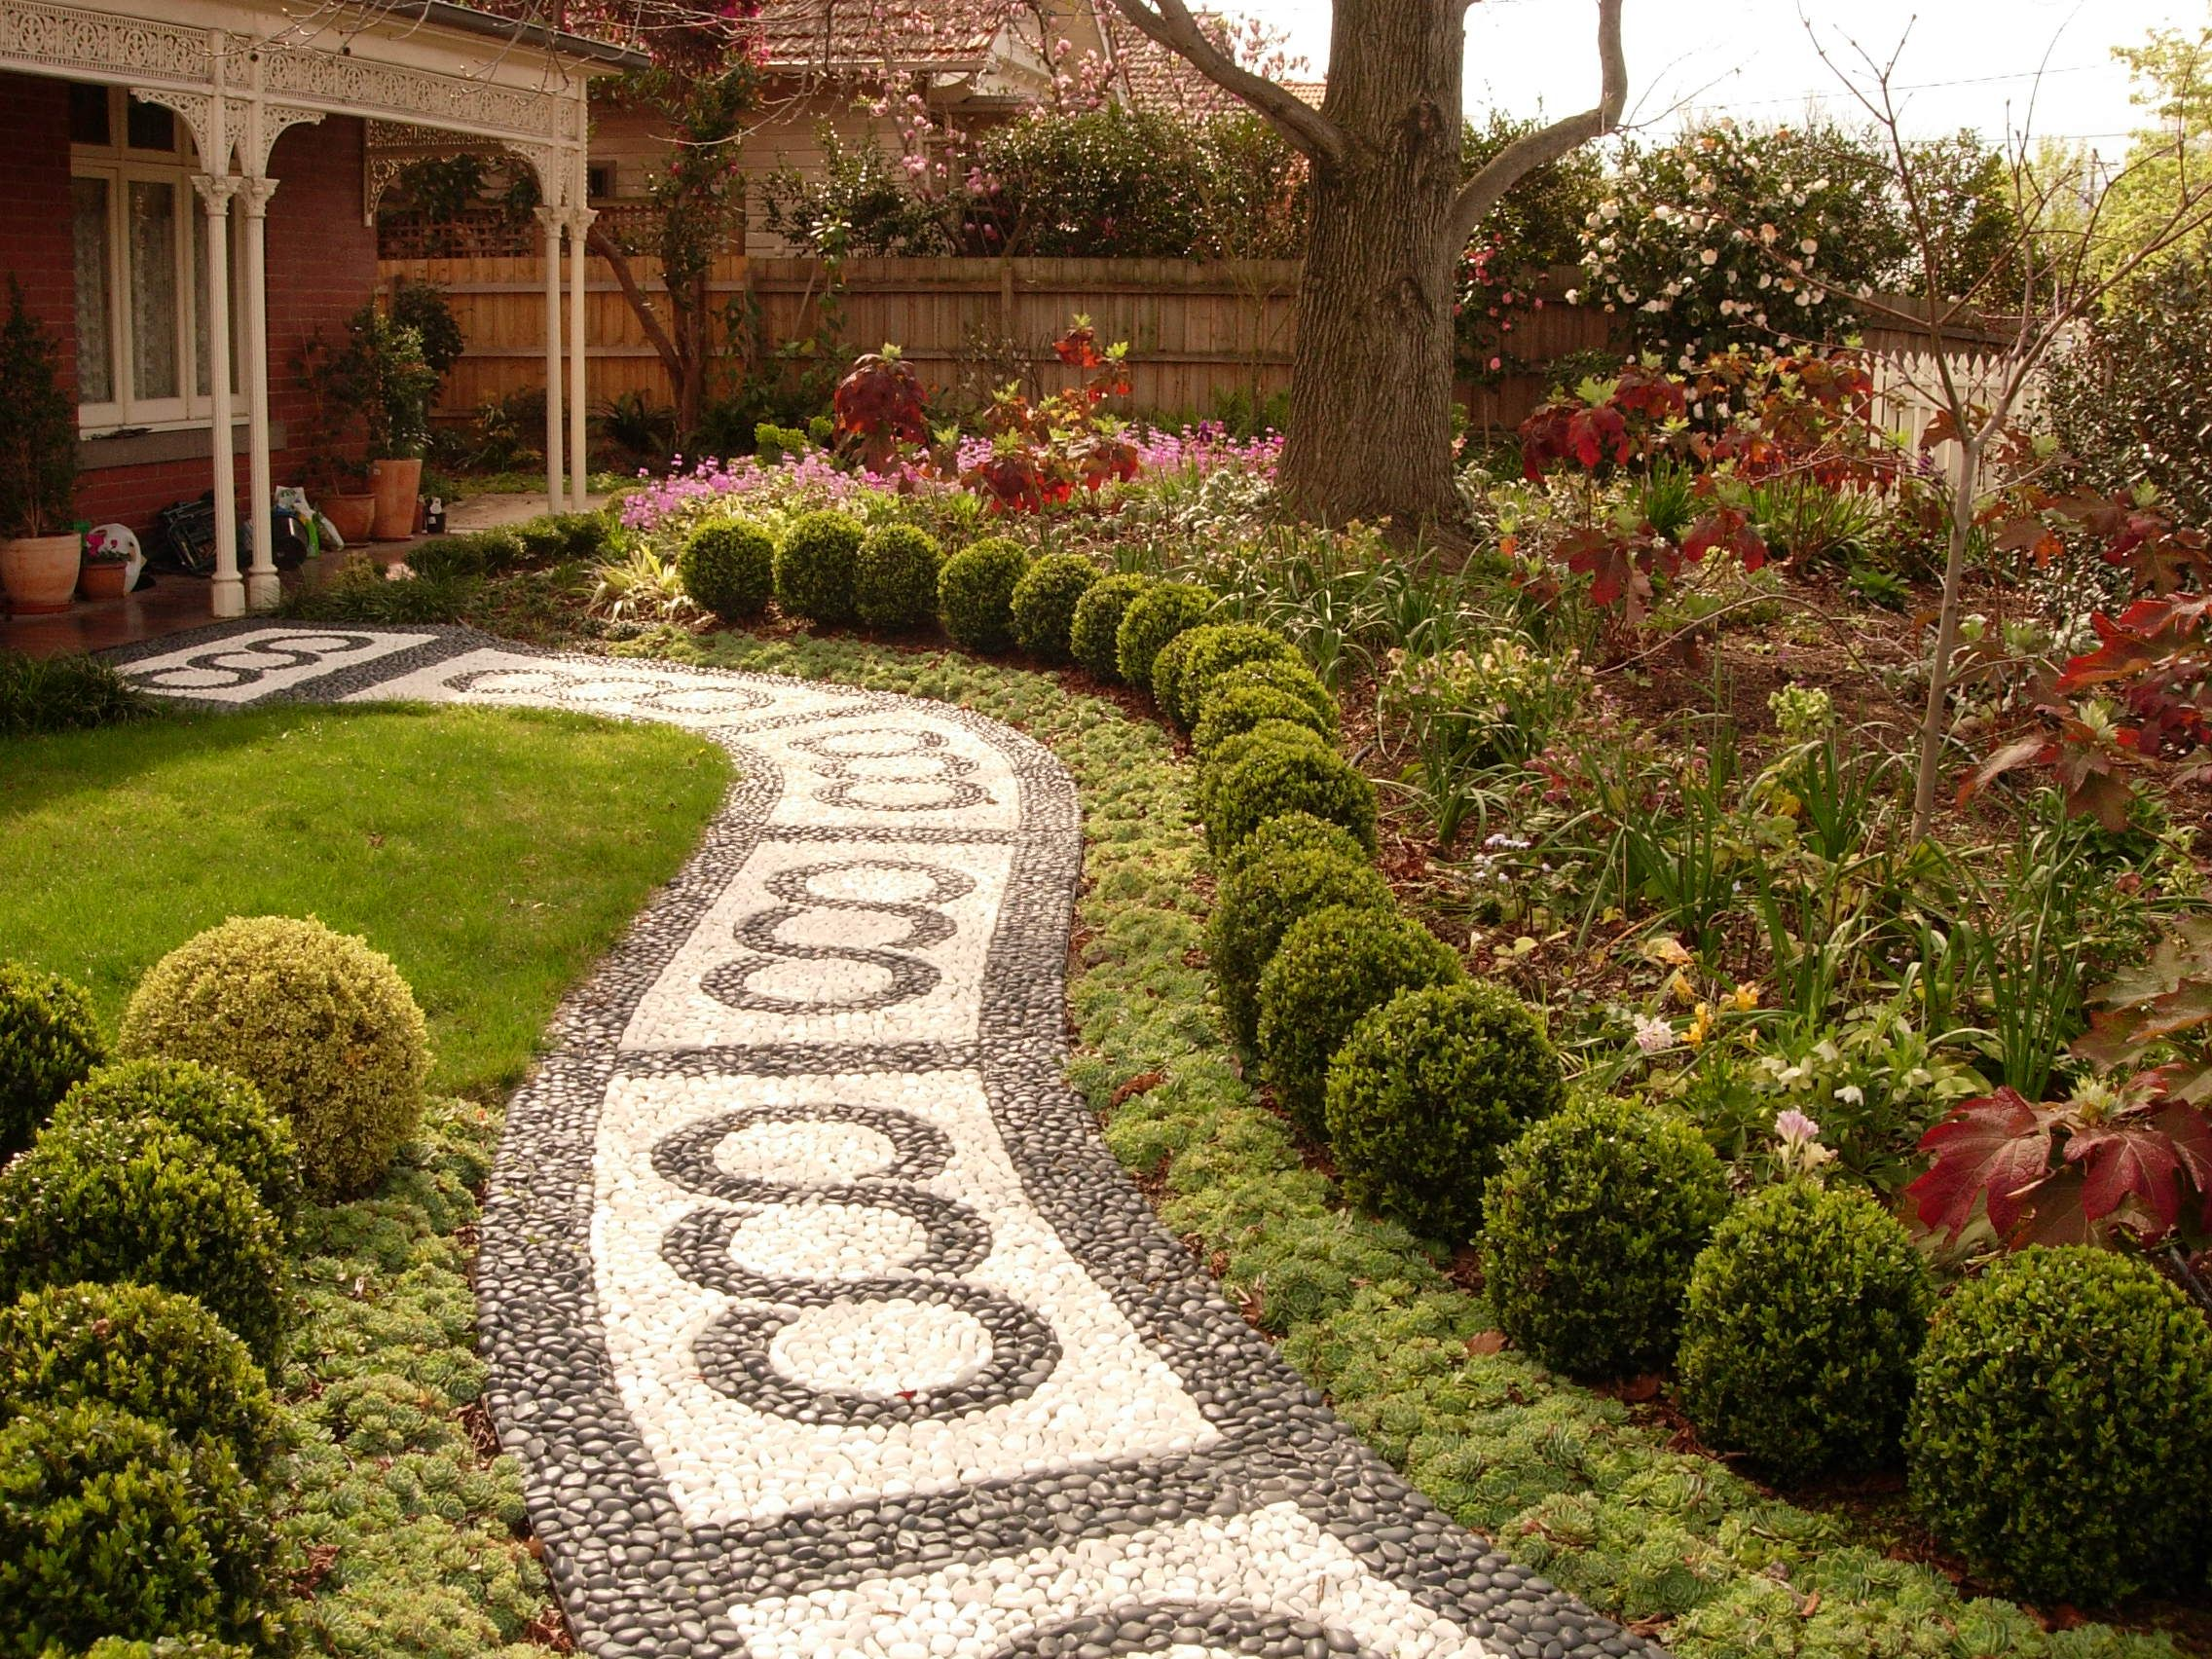 Victorian gardens gardenscape design victorian house for Landscaping ideas stone path